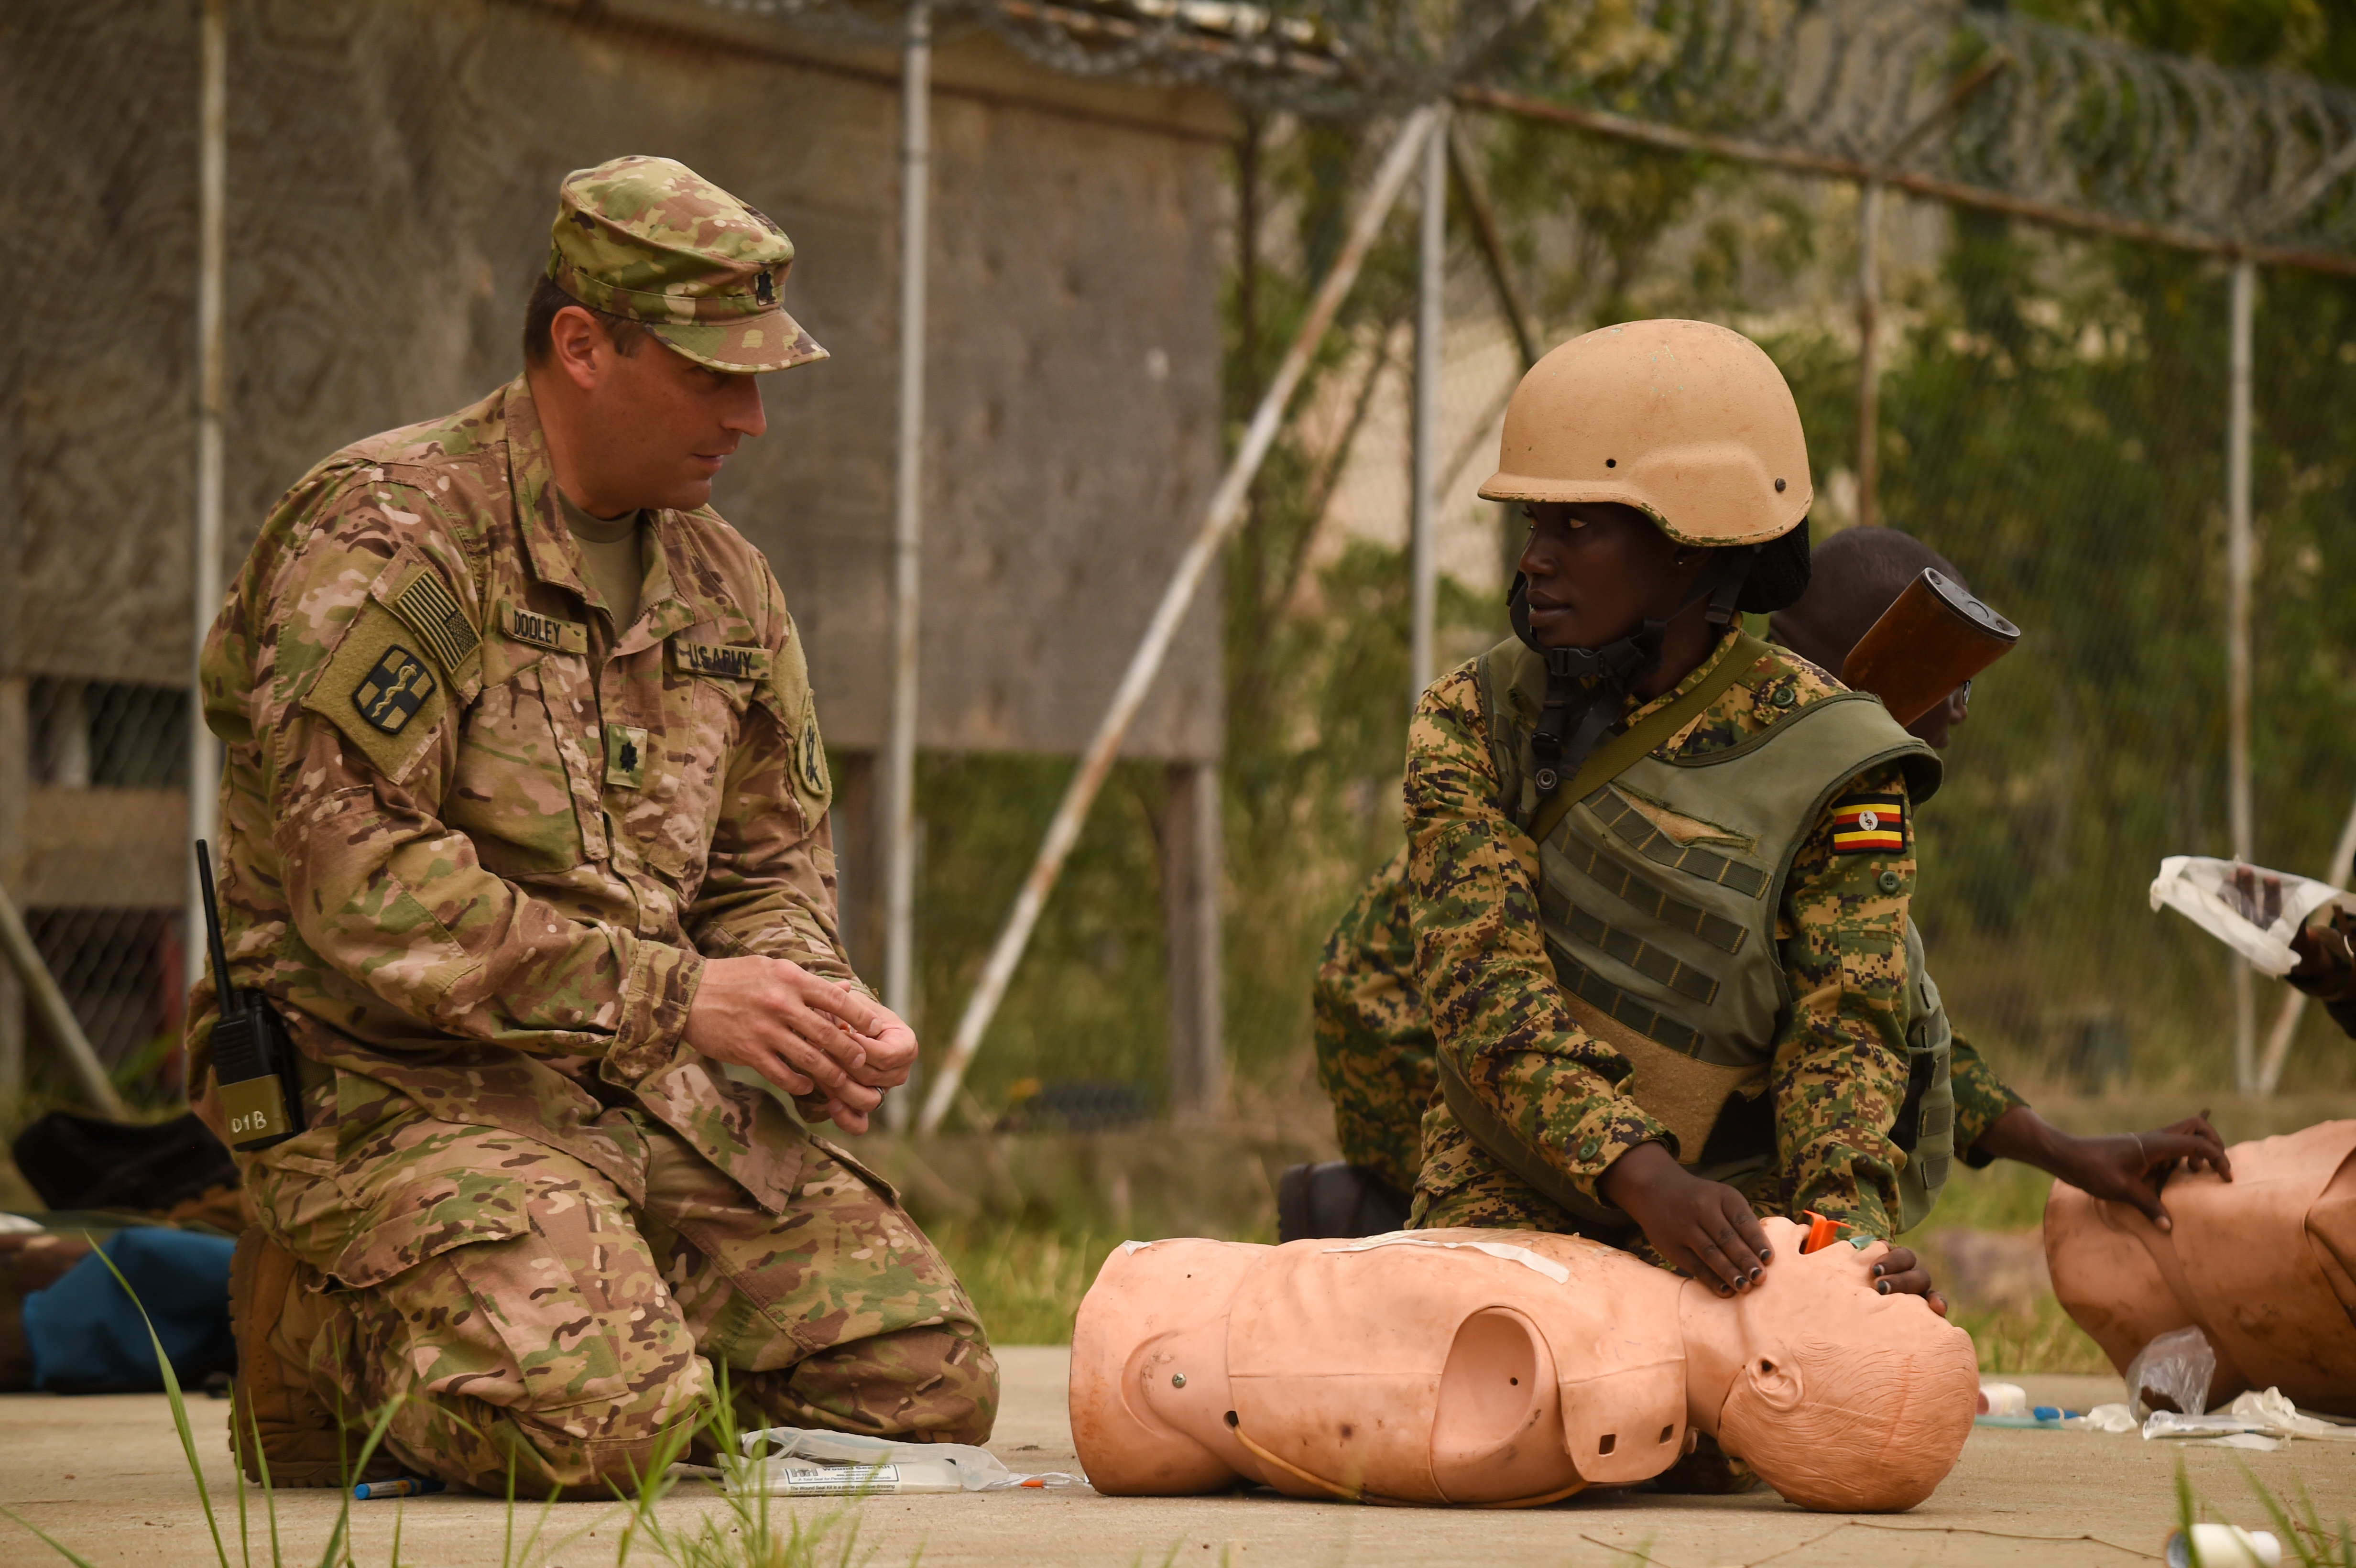 U.S. Army Lt. Col. Sean Dooley, functional specialty team officer in charge with Combined Joint Task Force-Horn of Africa's 418th Civil Affairs Battalion, oversees a Uganda People's Defense Force (UPDF) soldier assigned to Ugandan Battle Group 22 (UGABAG 22), providing and maintaining an open airway during a medical exercise at Camp Singo, March 3, 2017. The UPDF's UGABAG 22 tested the skills they culminated earlier in their pre-deployment training such as nine-line medical evacuation, combat lifesaving techniques, and providing cover from an enemy during extractions. (U.S. Air National Guard photo by Staff Sgt. Penny Snoozy)